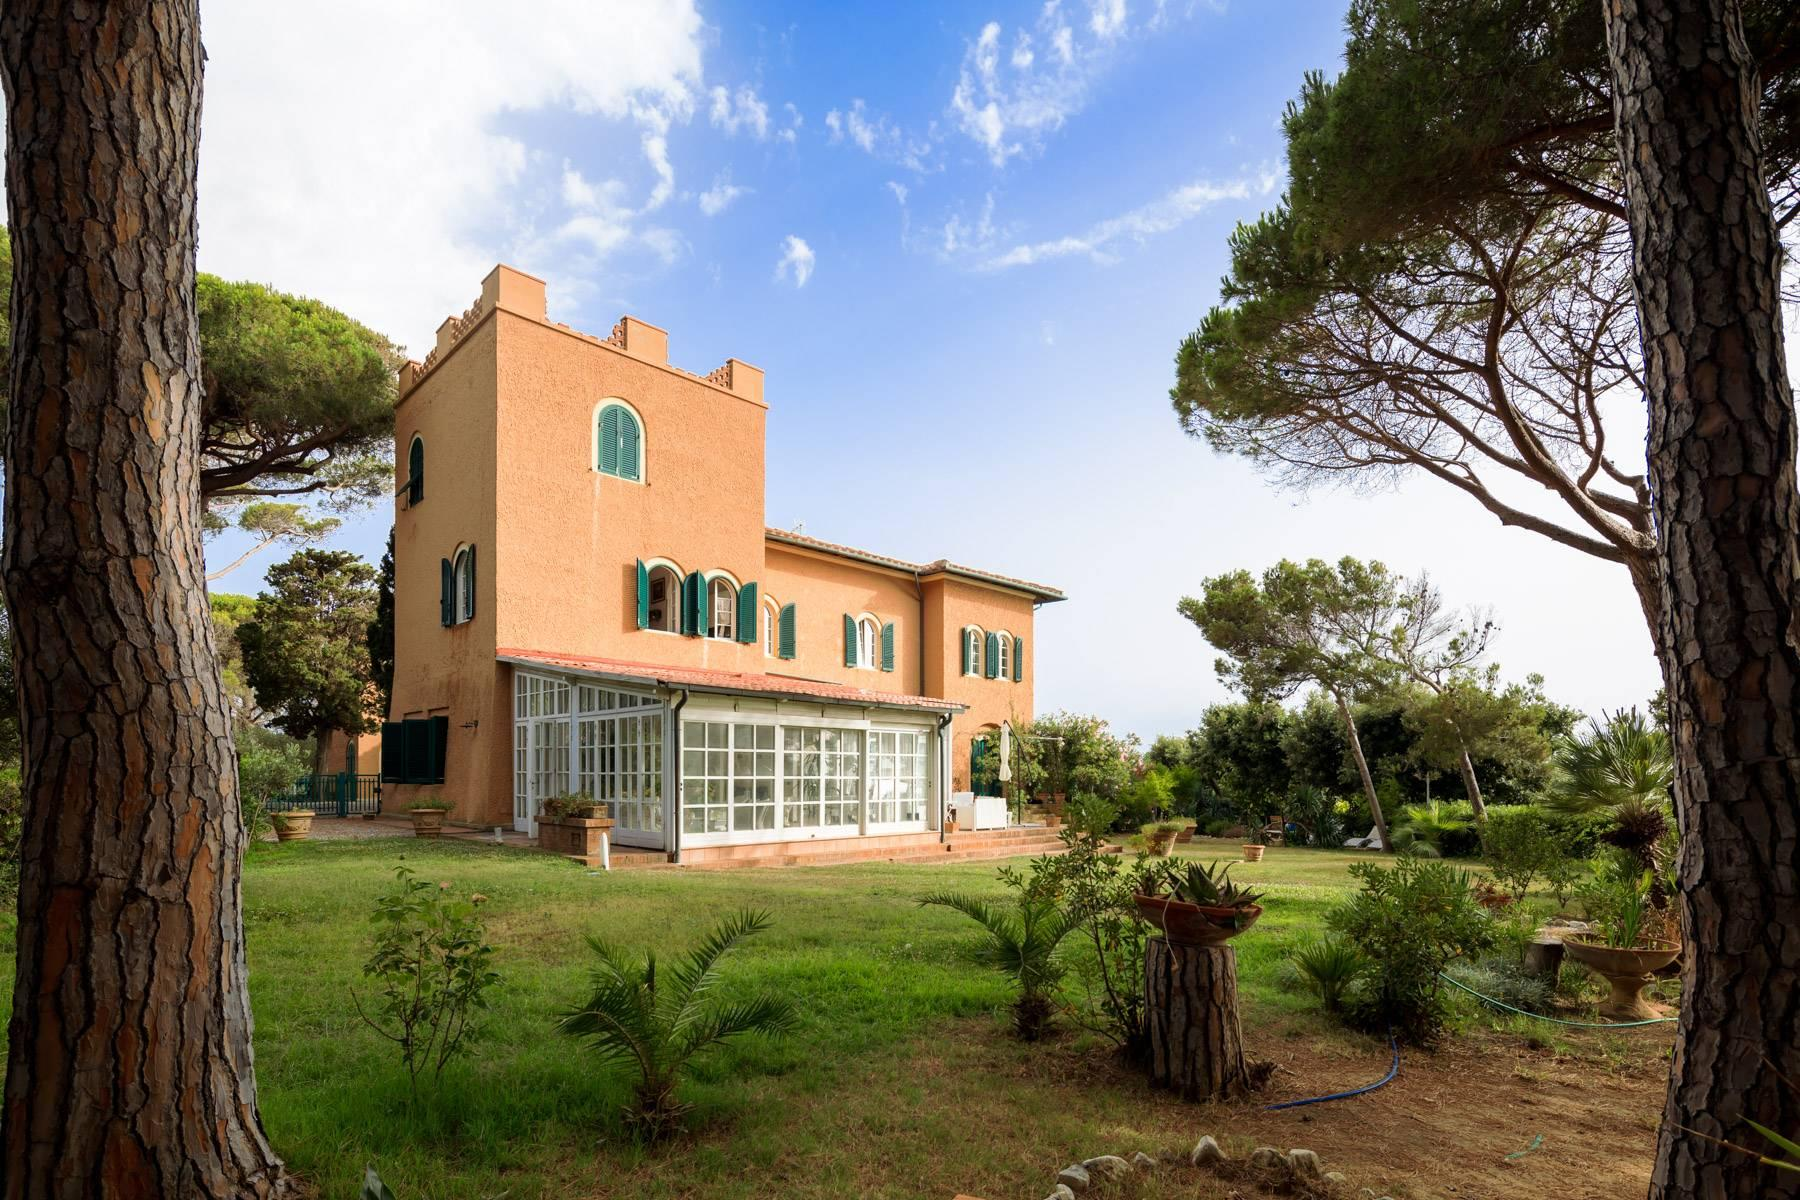 Apartment with private garden and access to the sea in a historic villa - 12